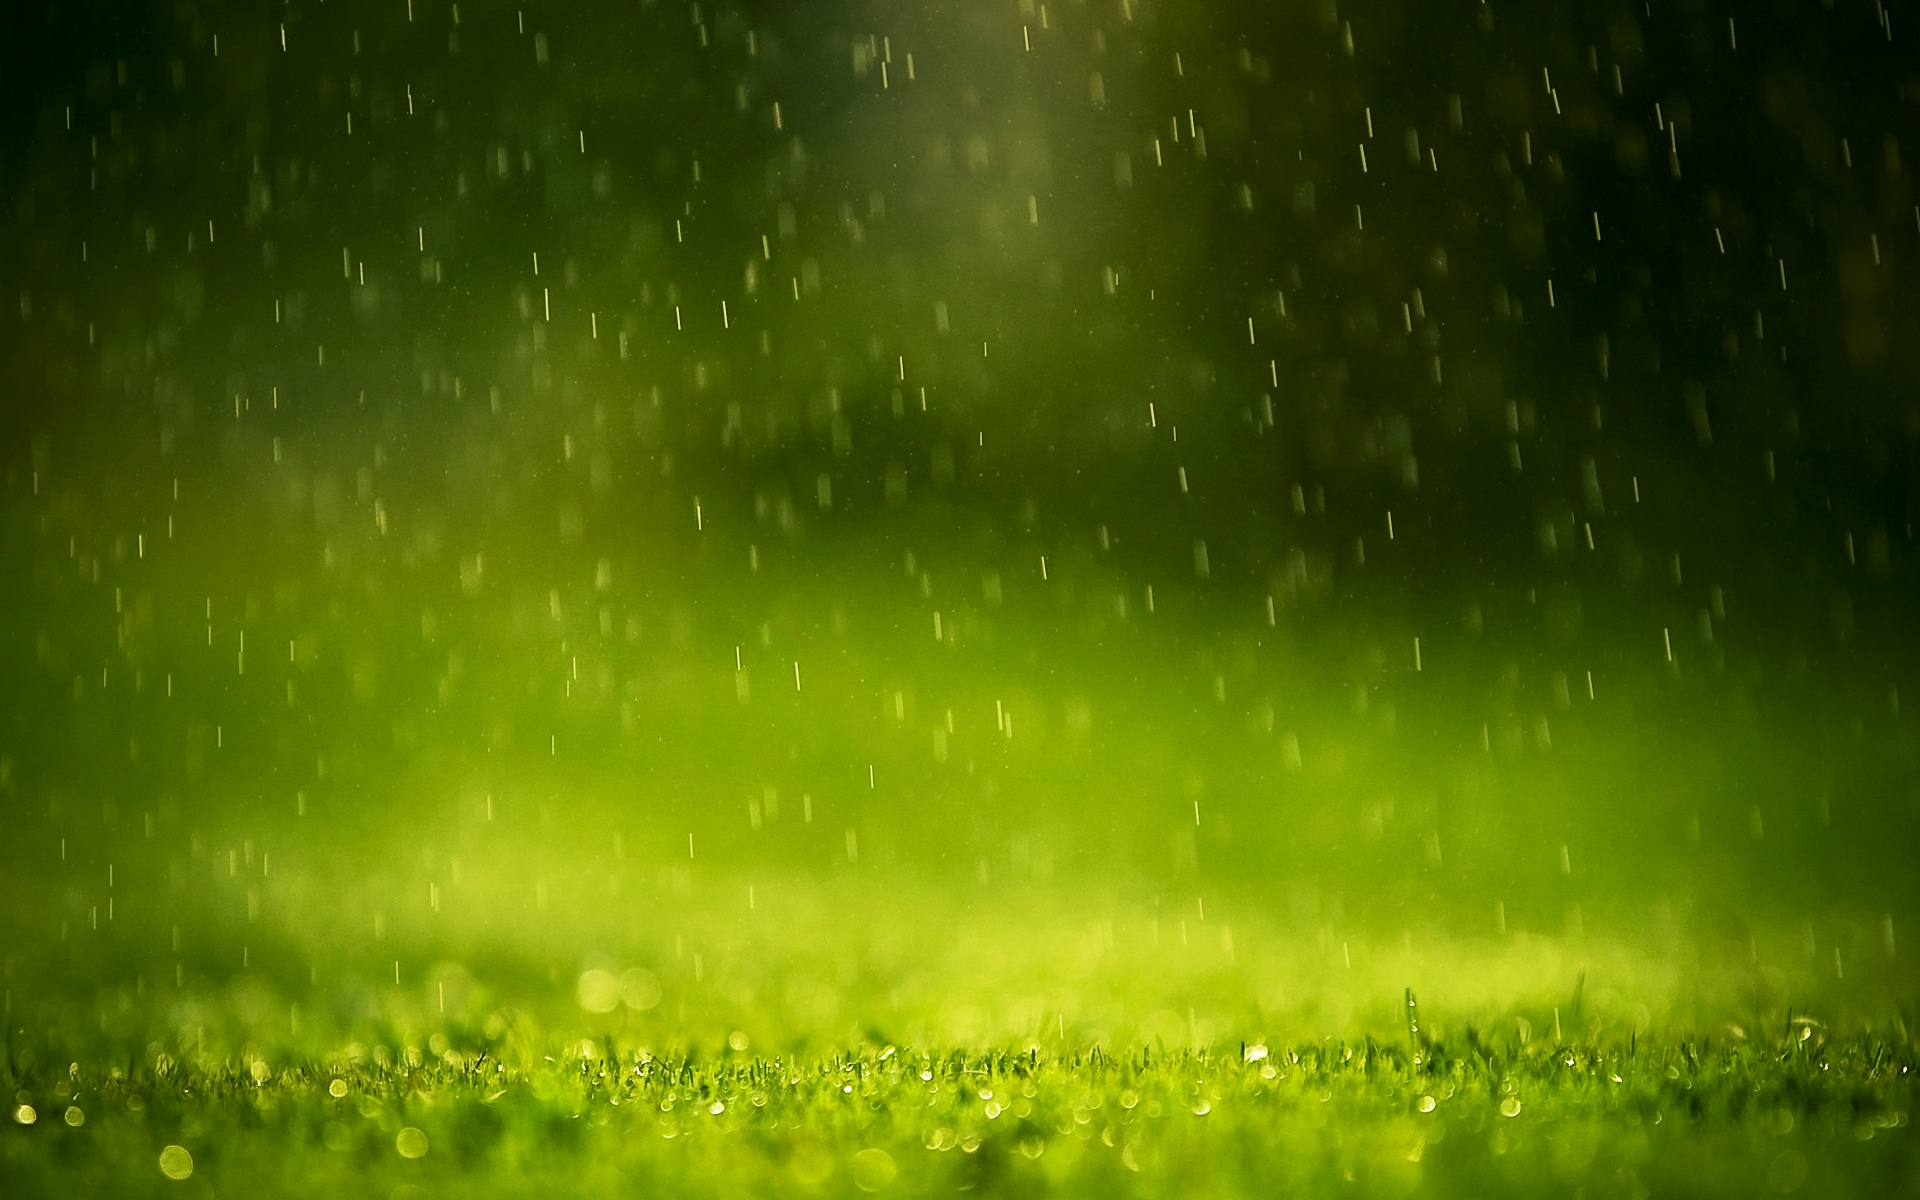 Rainy Day HD Wallpapers Pictures Images Backgrounds Photos 1920x1200